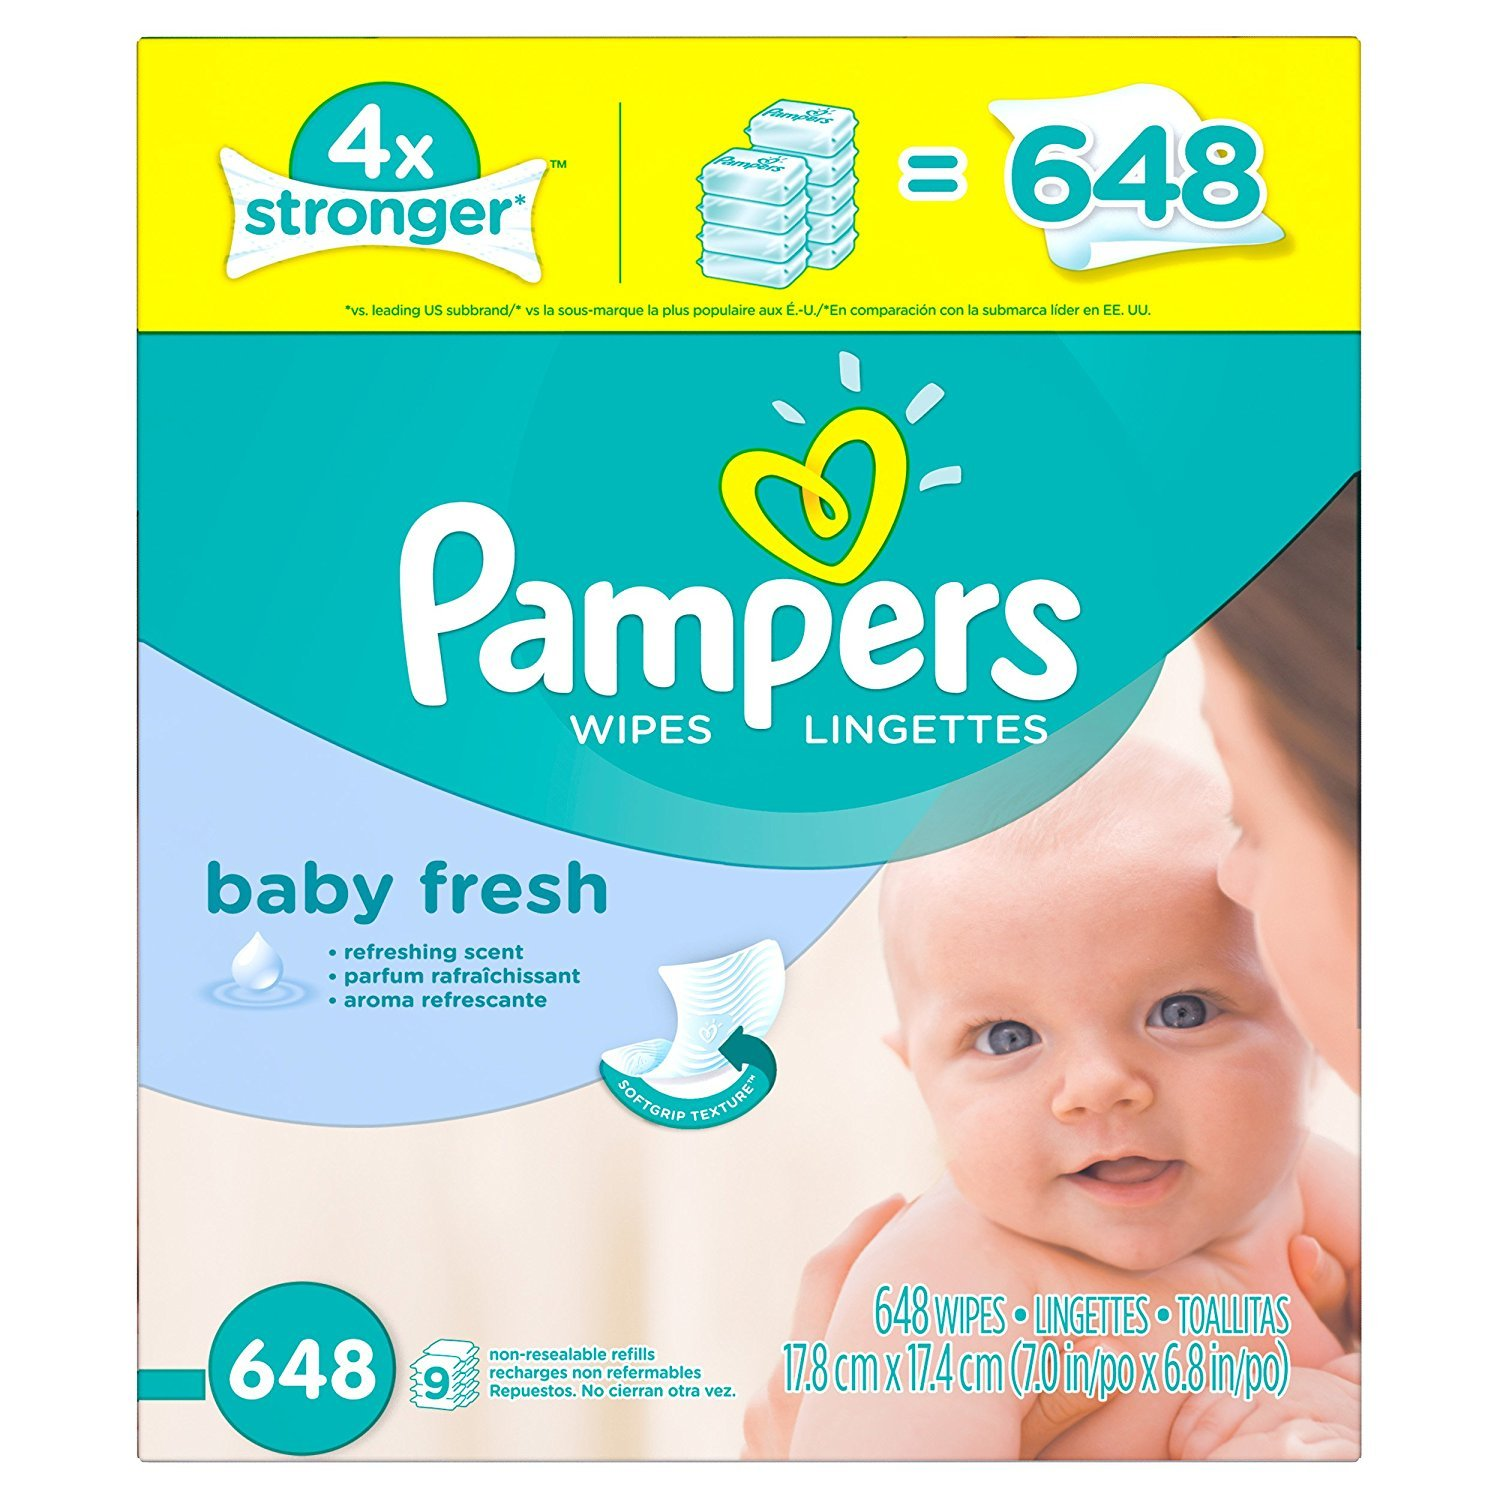 Amazon.com : Pampers Refreshing scent Hypoallergenic Unique Softgrip Texture, Pure Water Lotion Baby Fresh Baby Wipes Refill Pack 648 Count : Baby